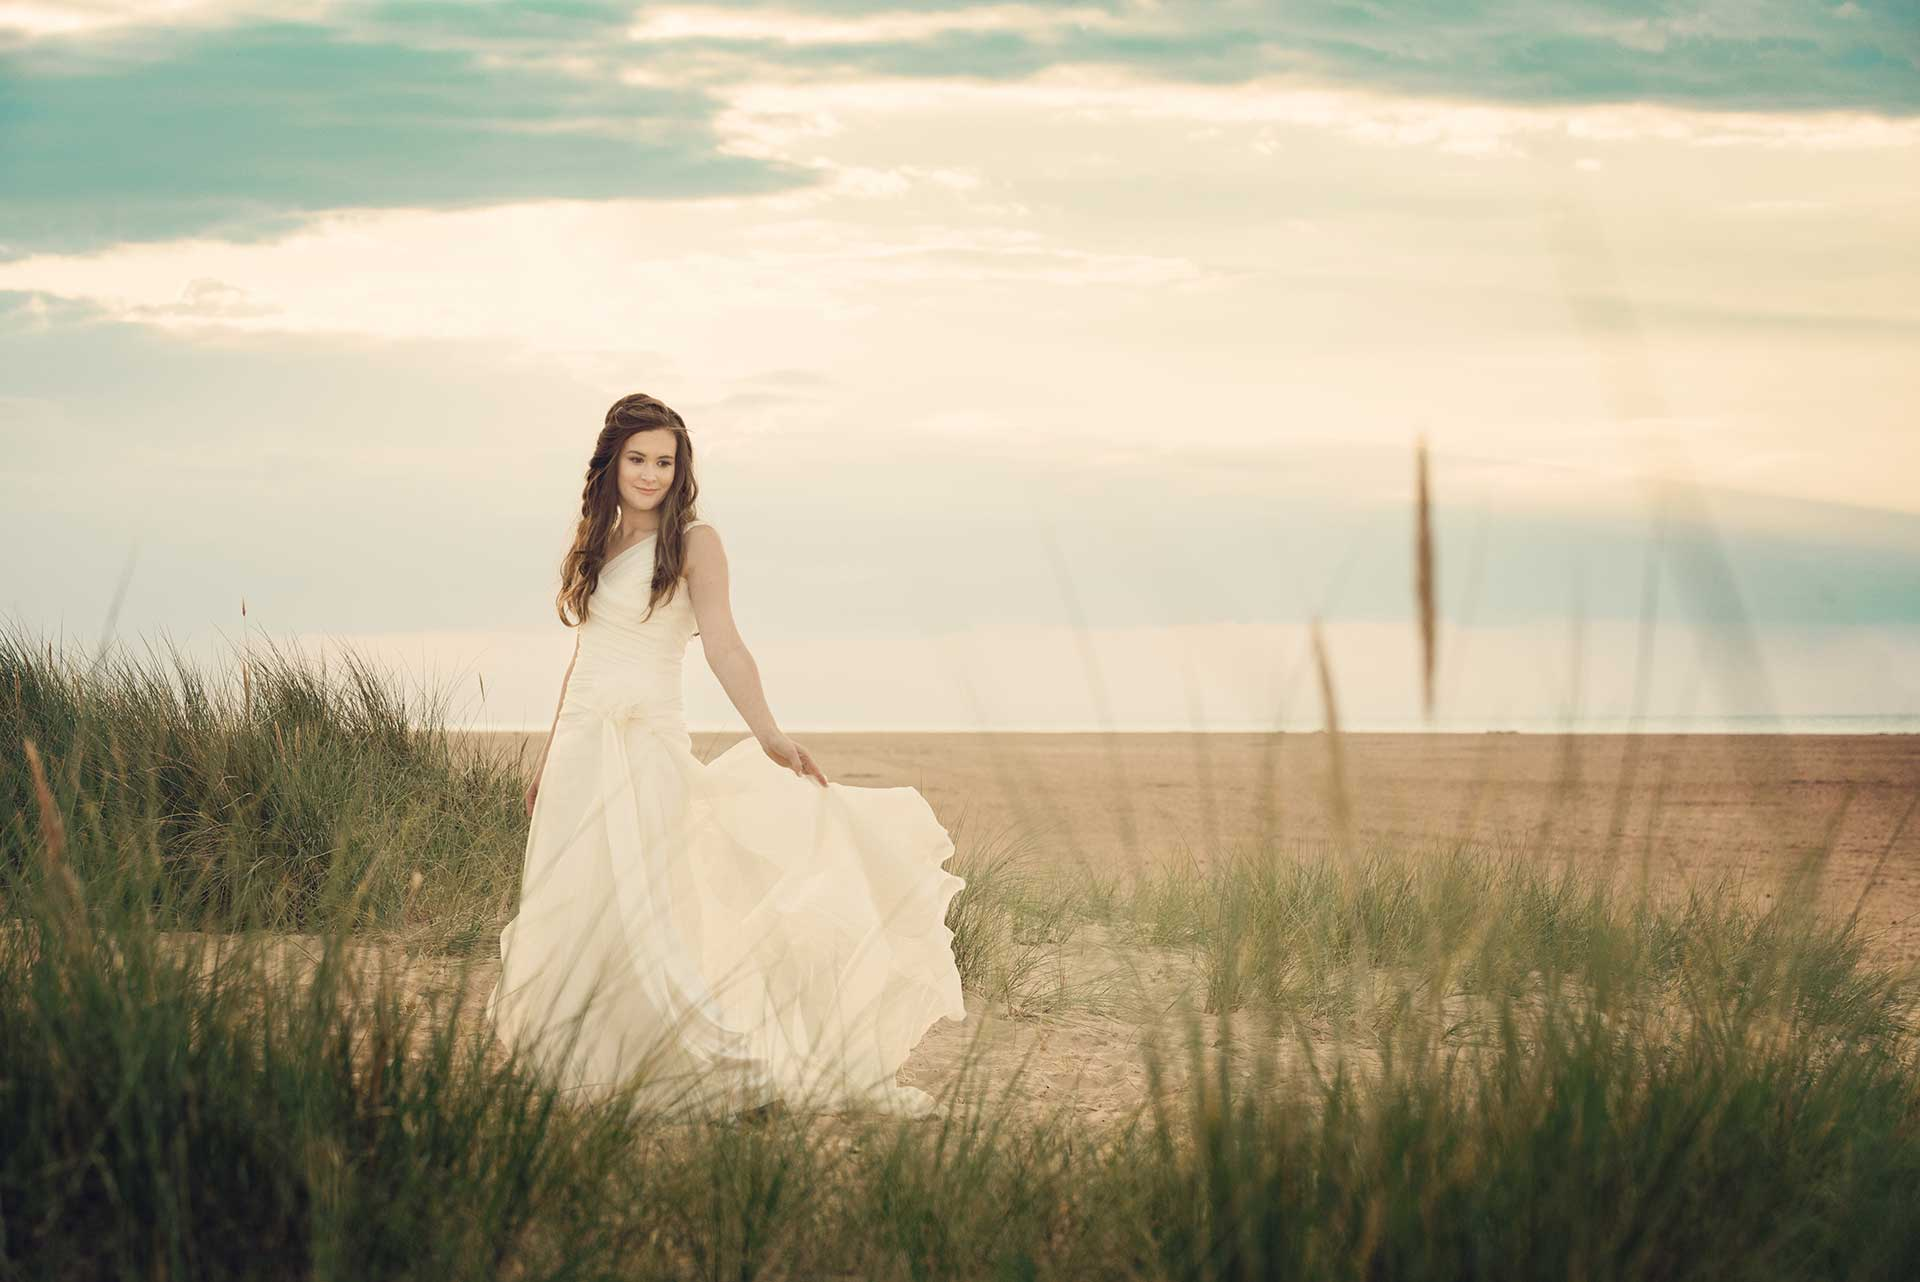 Bridal fashion shoot at Holkham beach